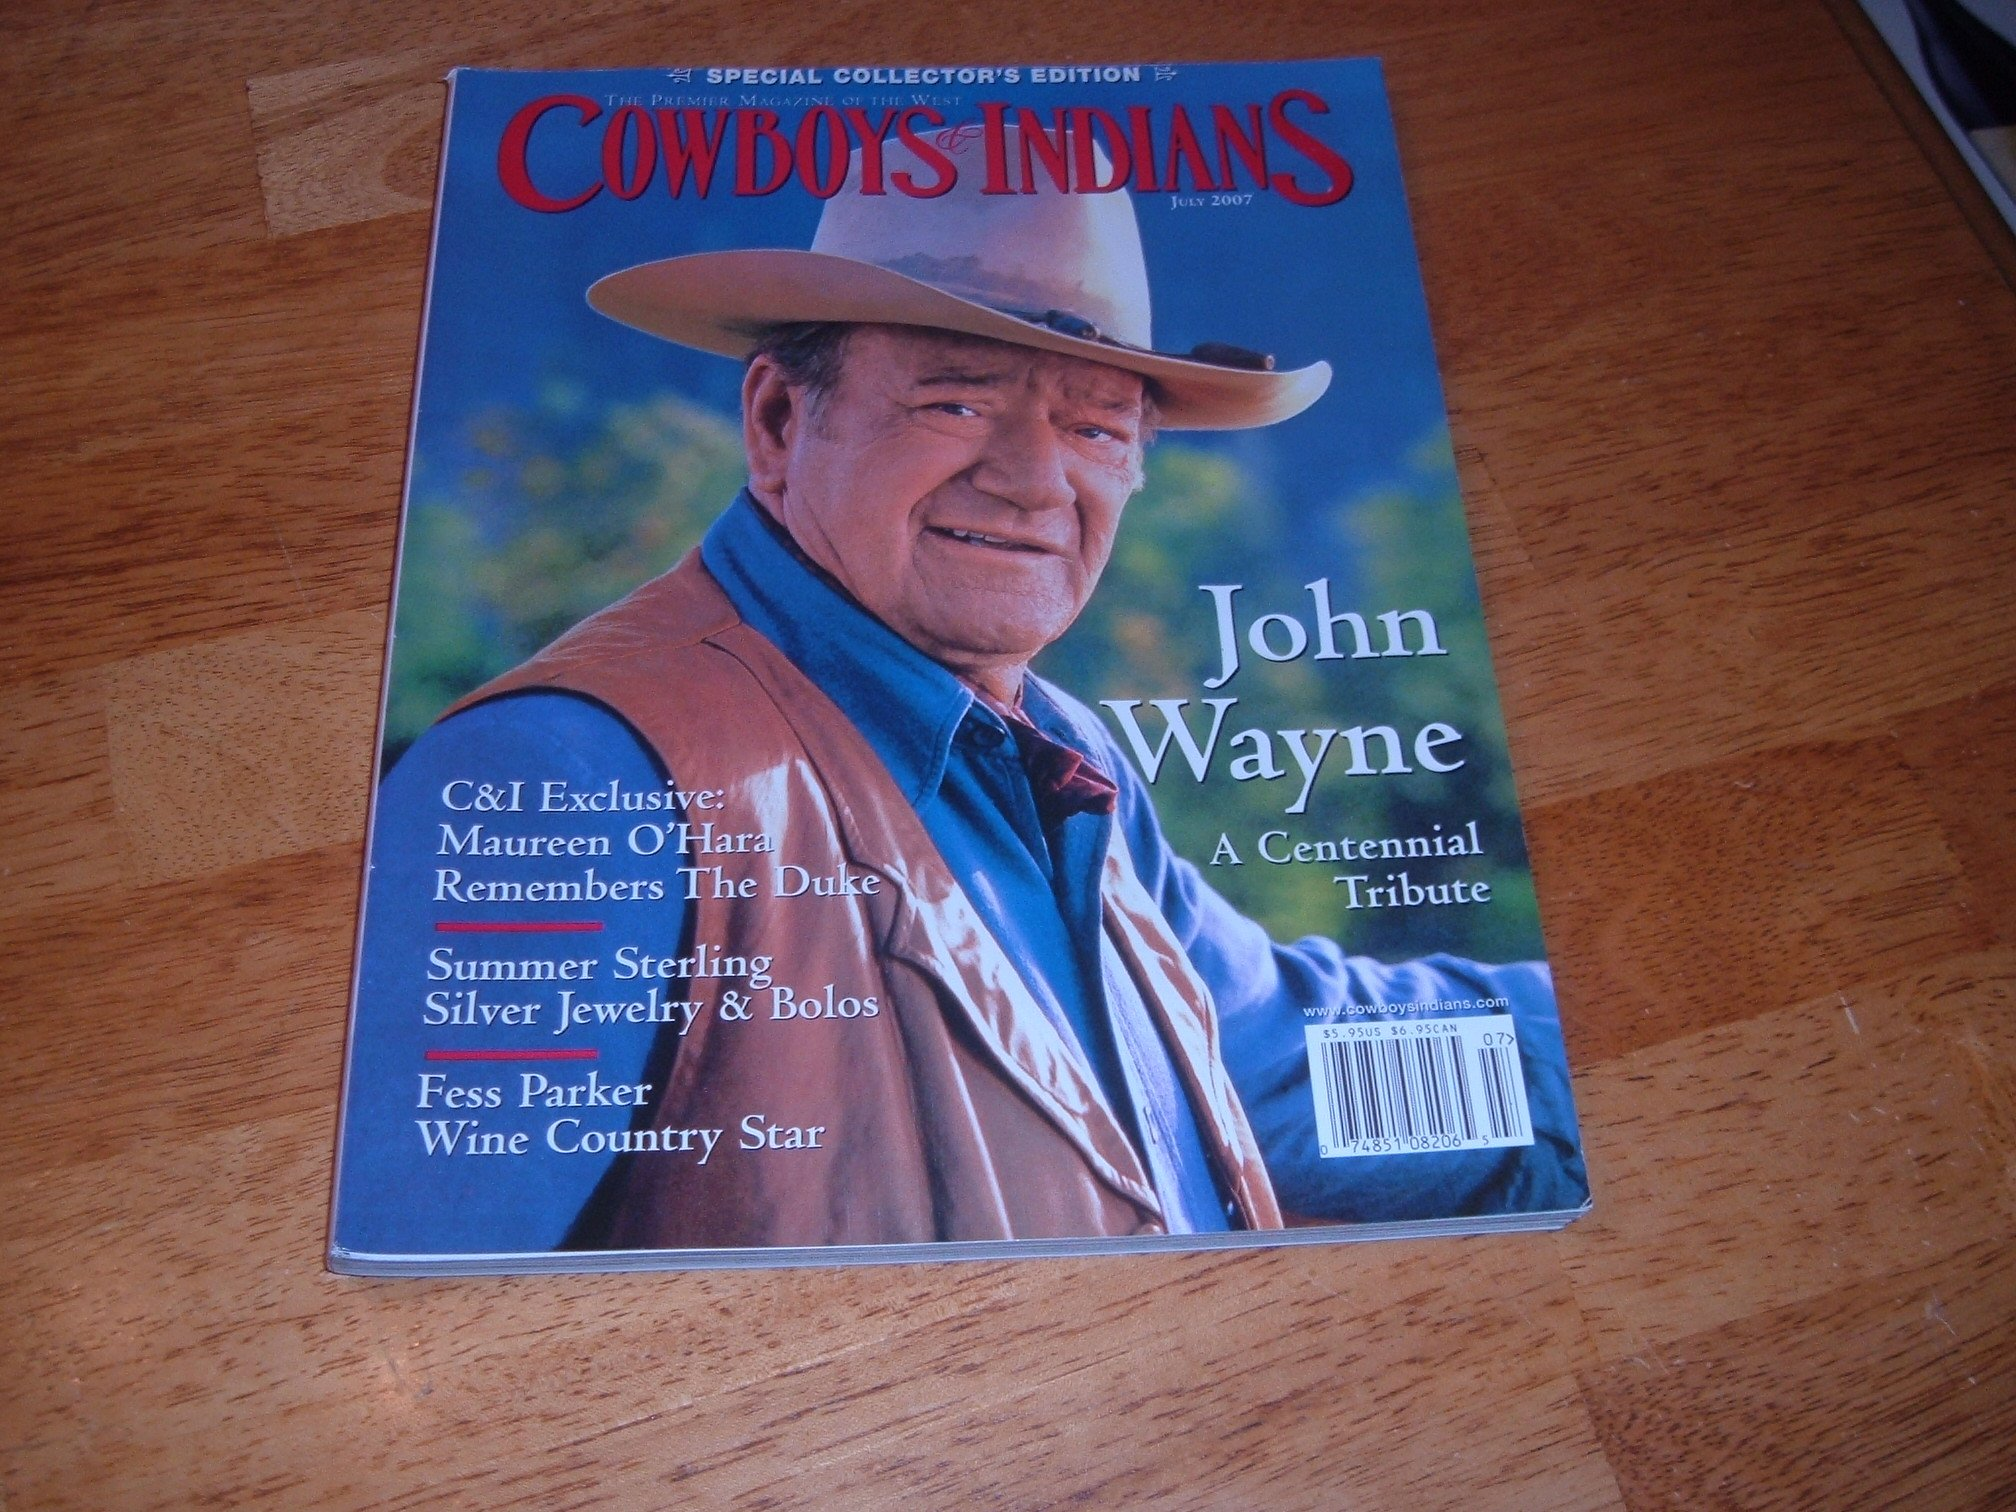 COWBOYS & INDIANS magazine July 2007 (The Premier Magazine Of The West, www.cowboysindians.com, Volume 15 Number 5, John Wayne - A Centennial Tribute, Special Collector's Edition, C&I Exclusive: Maureen O'Hara Remembers The Duke, Silver Jewelry & Bolos, Fess Parker) pdf